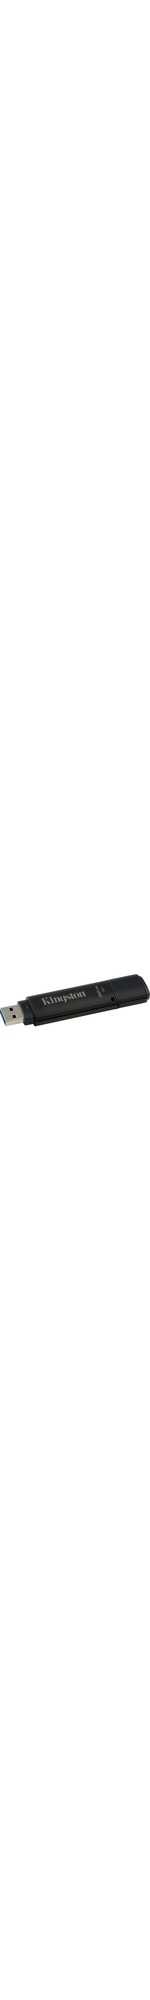 Kingston DataTraveler 4000 G2 32 GB USB 3.0 Flash Drive - 256-bit AES